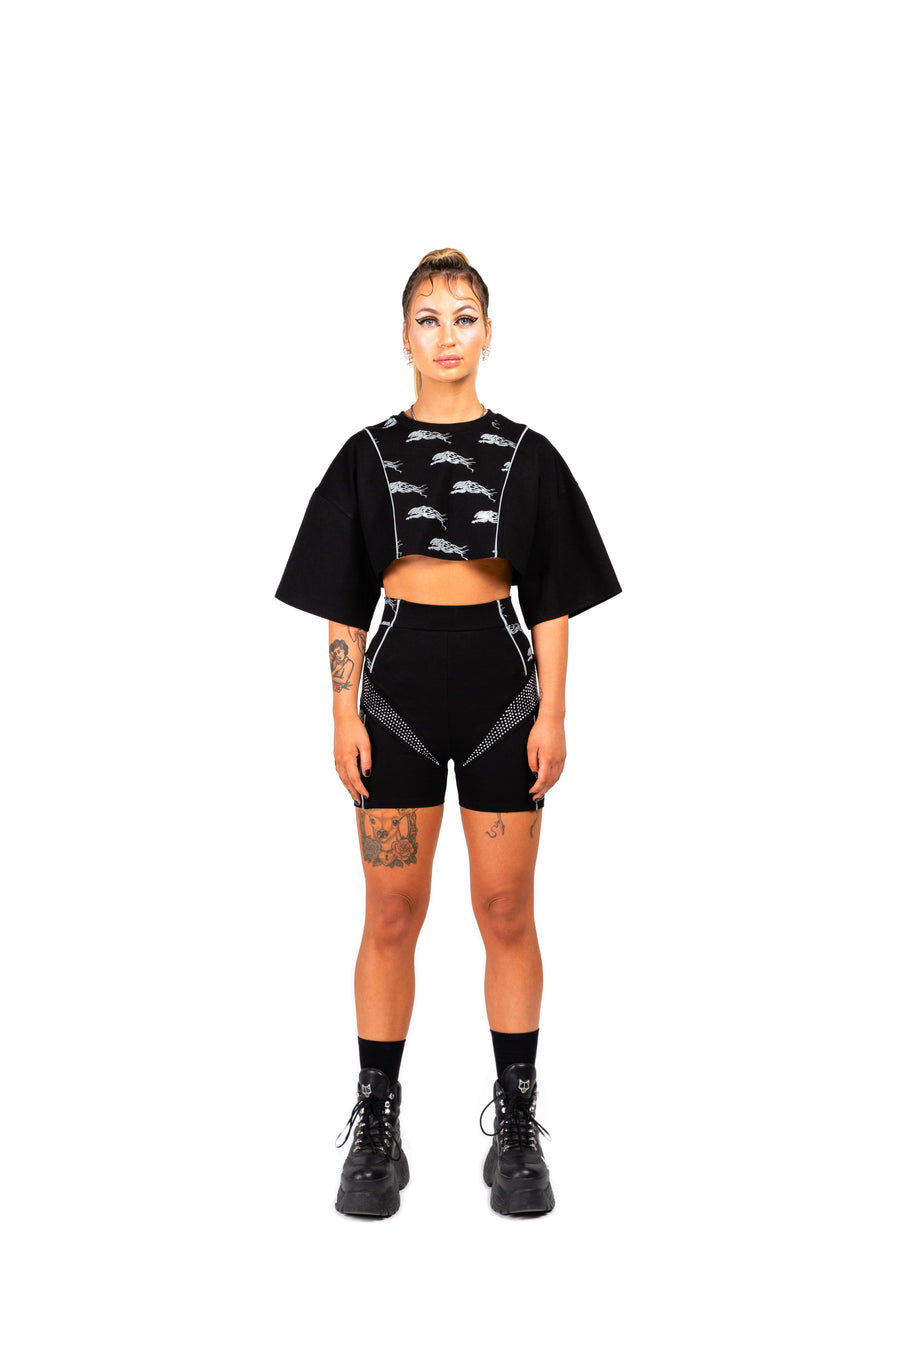 SAMPLE - LYNX CROPPED TEE - BLACK